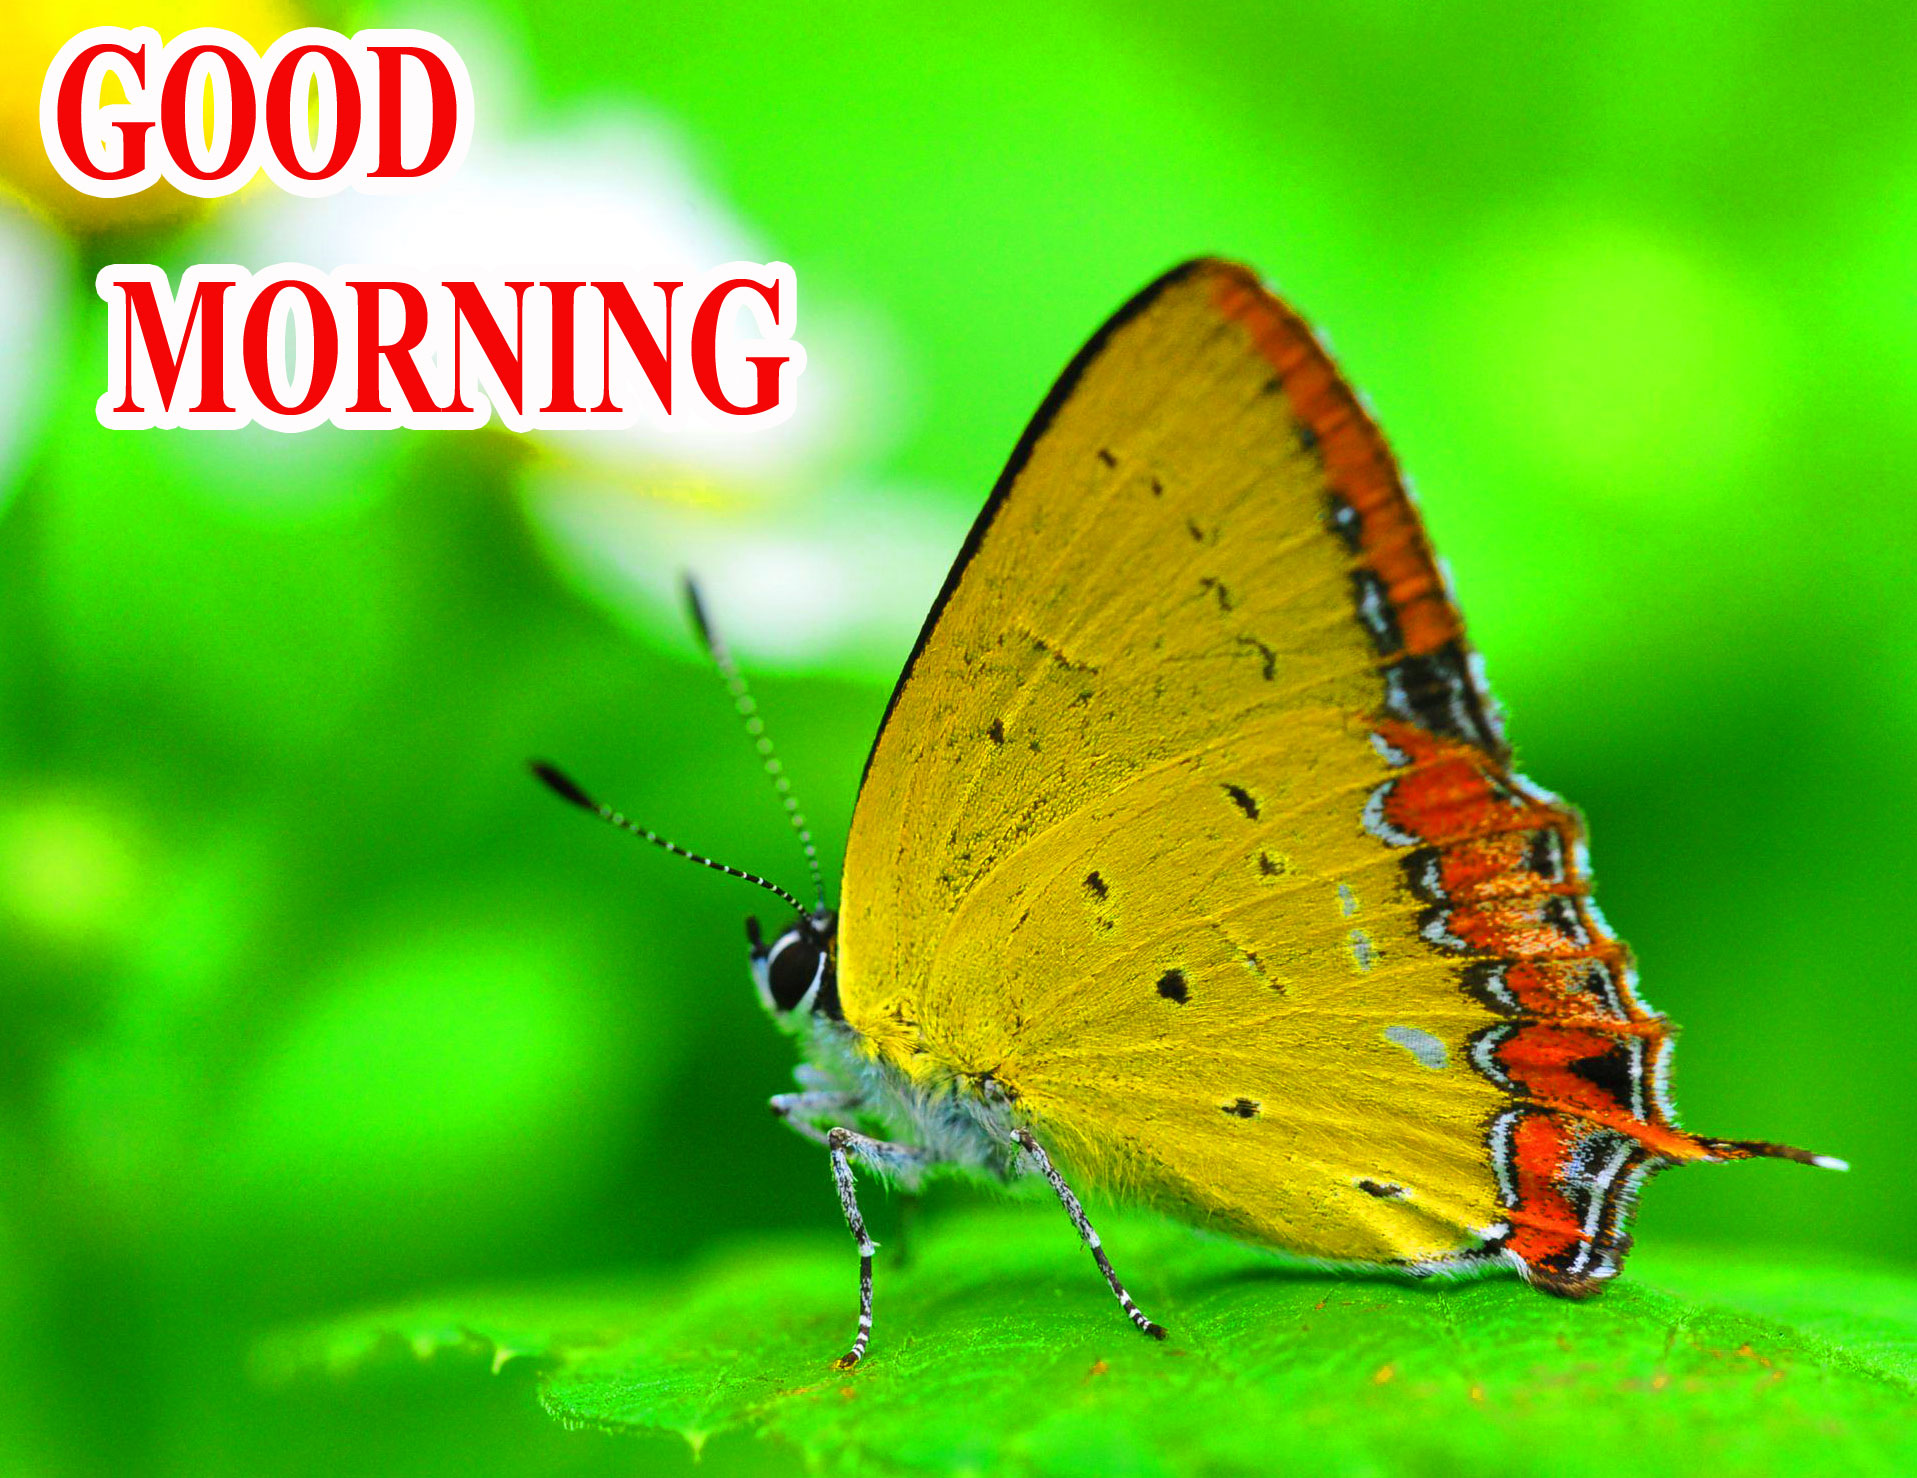 BEAUTIFUL LATEST AMAZING ALL GOOD MORNING IMAGES PHOTO FOR FACEBOOK